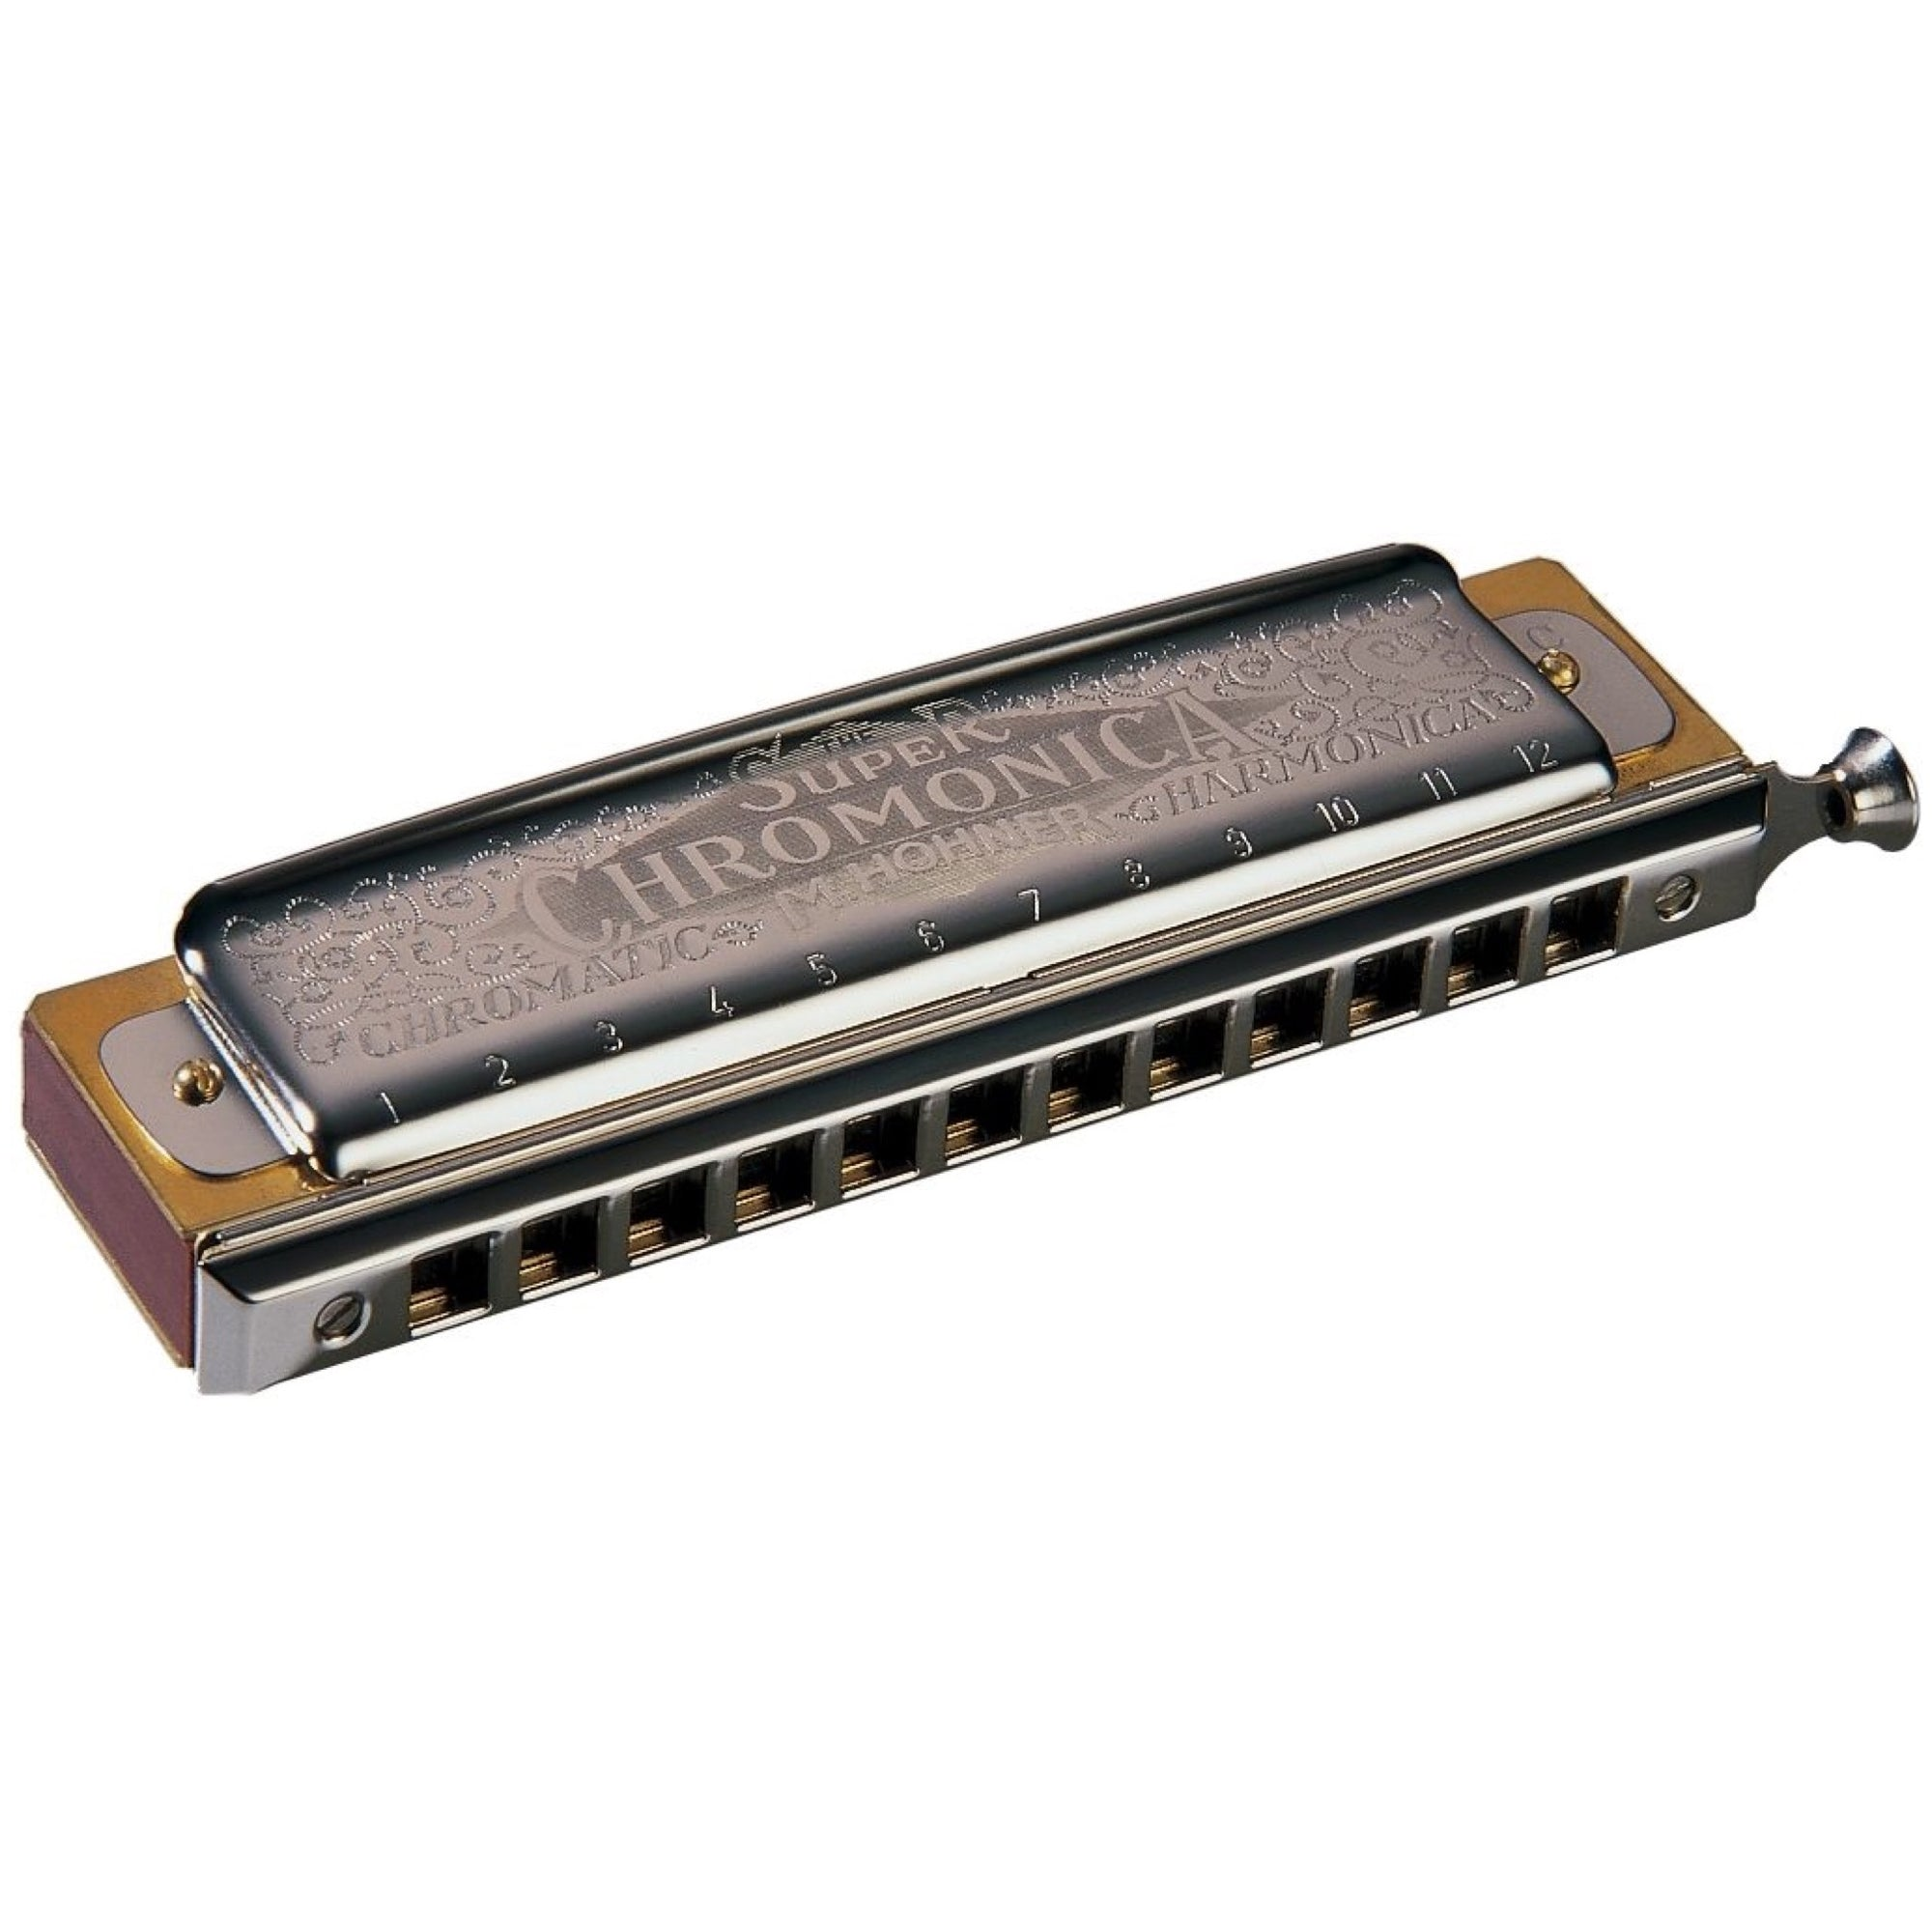 Hohner 270 Super Chromonica Chromatic Harmonica, Key of G